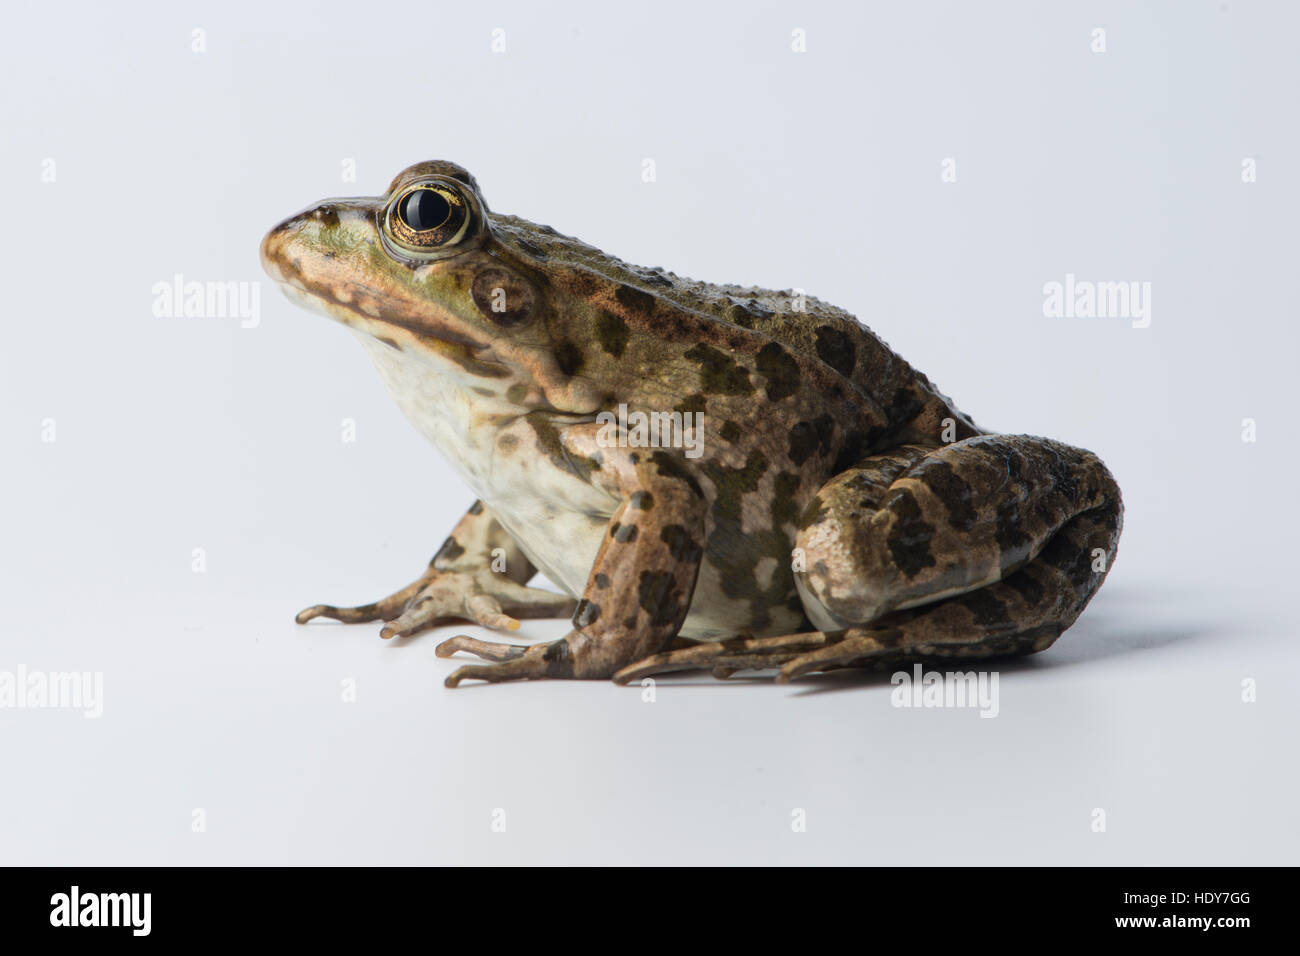 Frog on clear white background - Stock Image